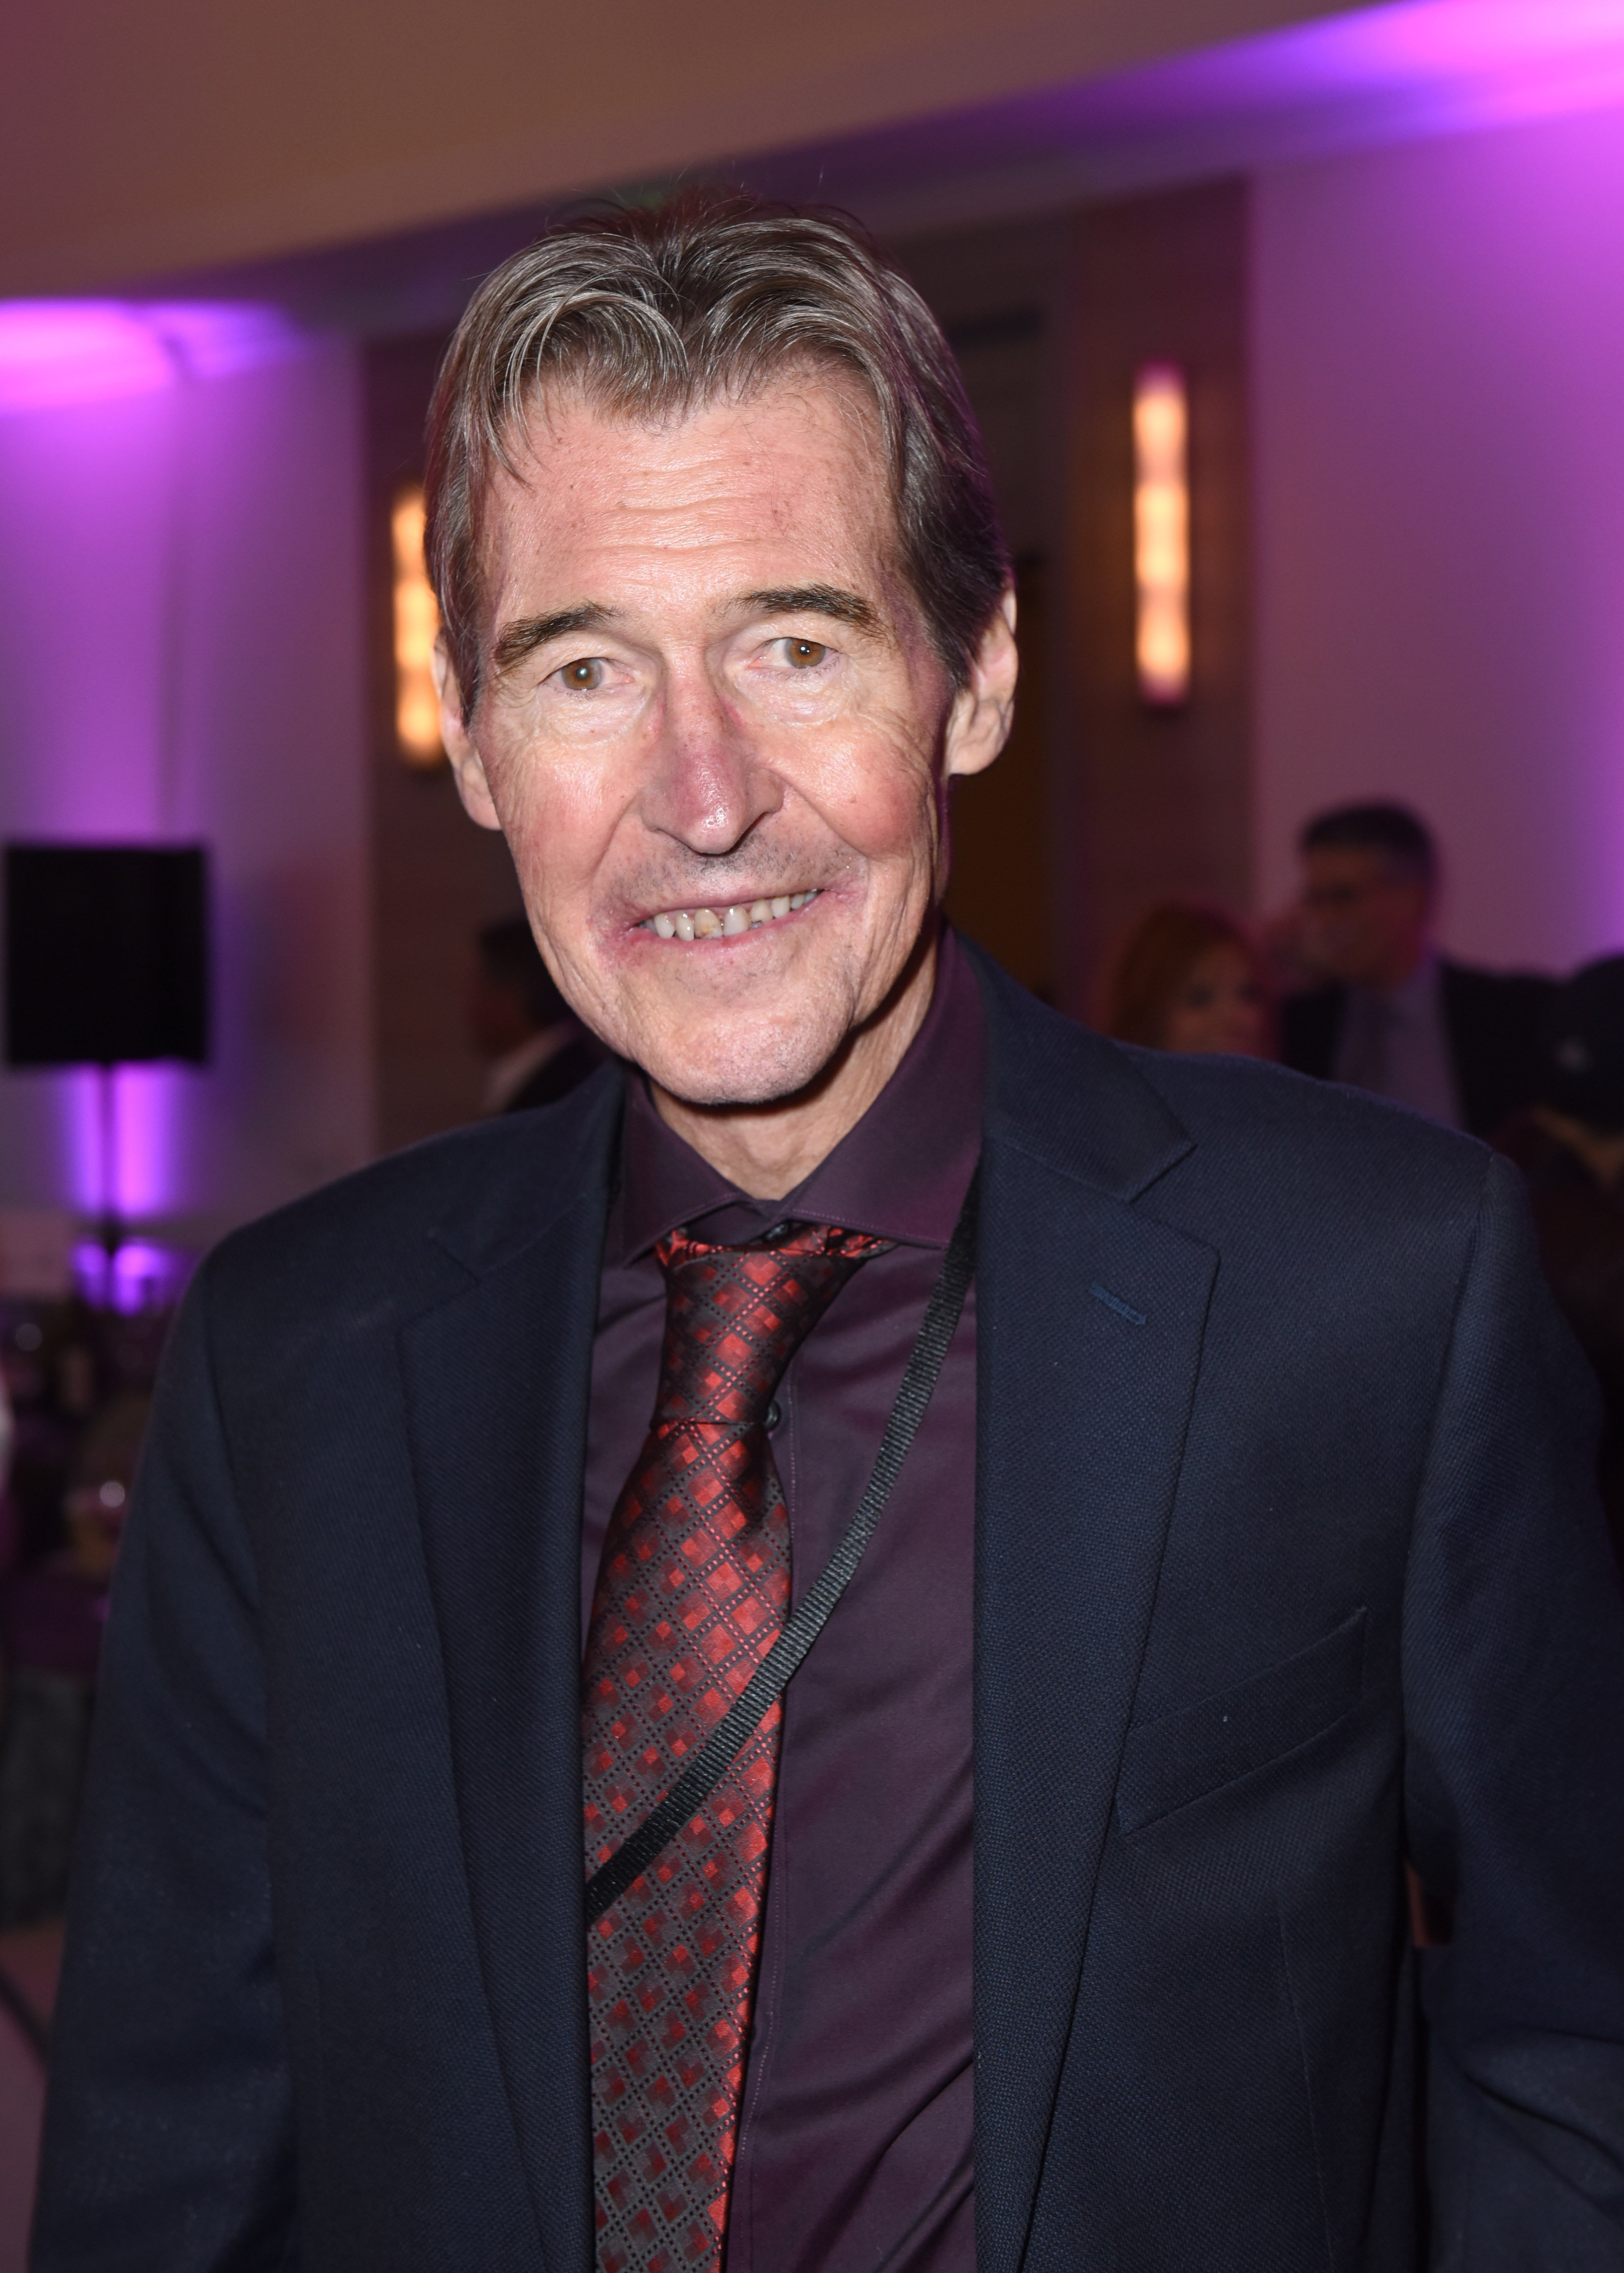 Randolph Mantooth on October 11, 2018 in San Diego, California | Source: Getty Images